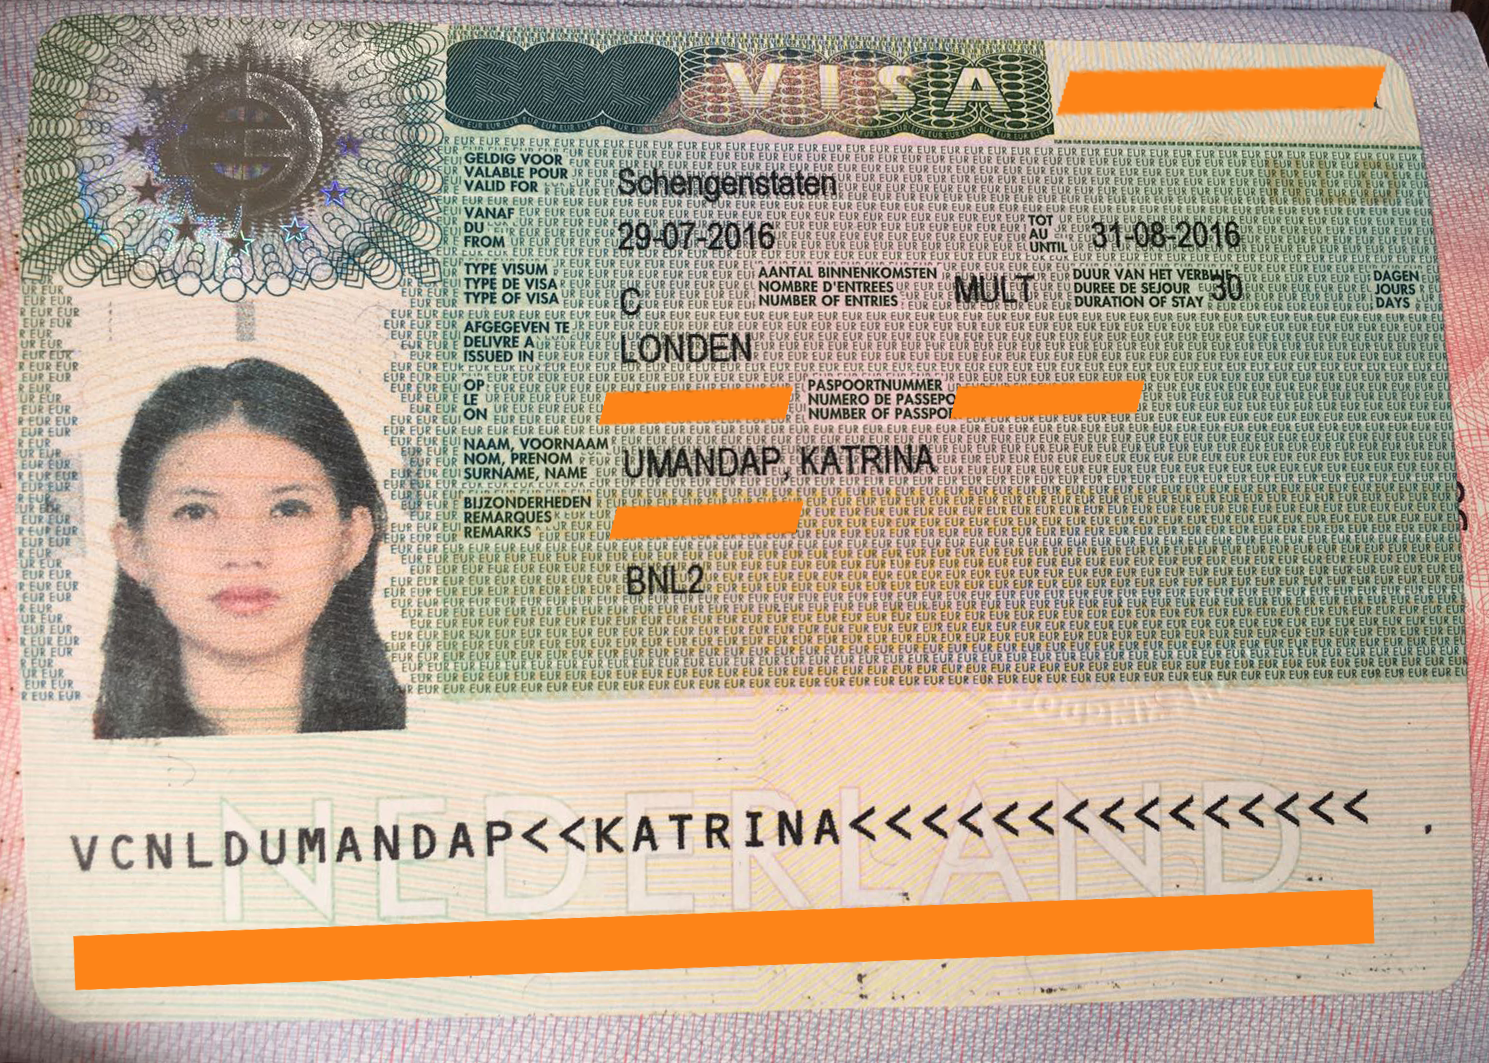 Everything you Need to Know about Applying and Getting a Schengen Visa. Most common Question Asked about Schengen Visa for 3rd World Passport, Here are the Answers!